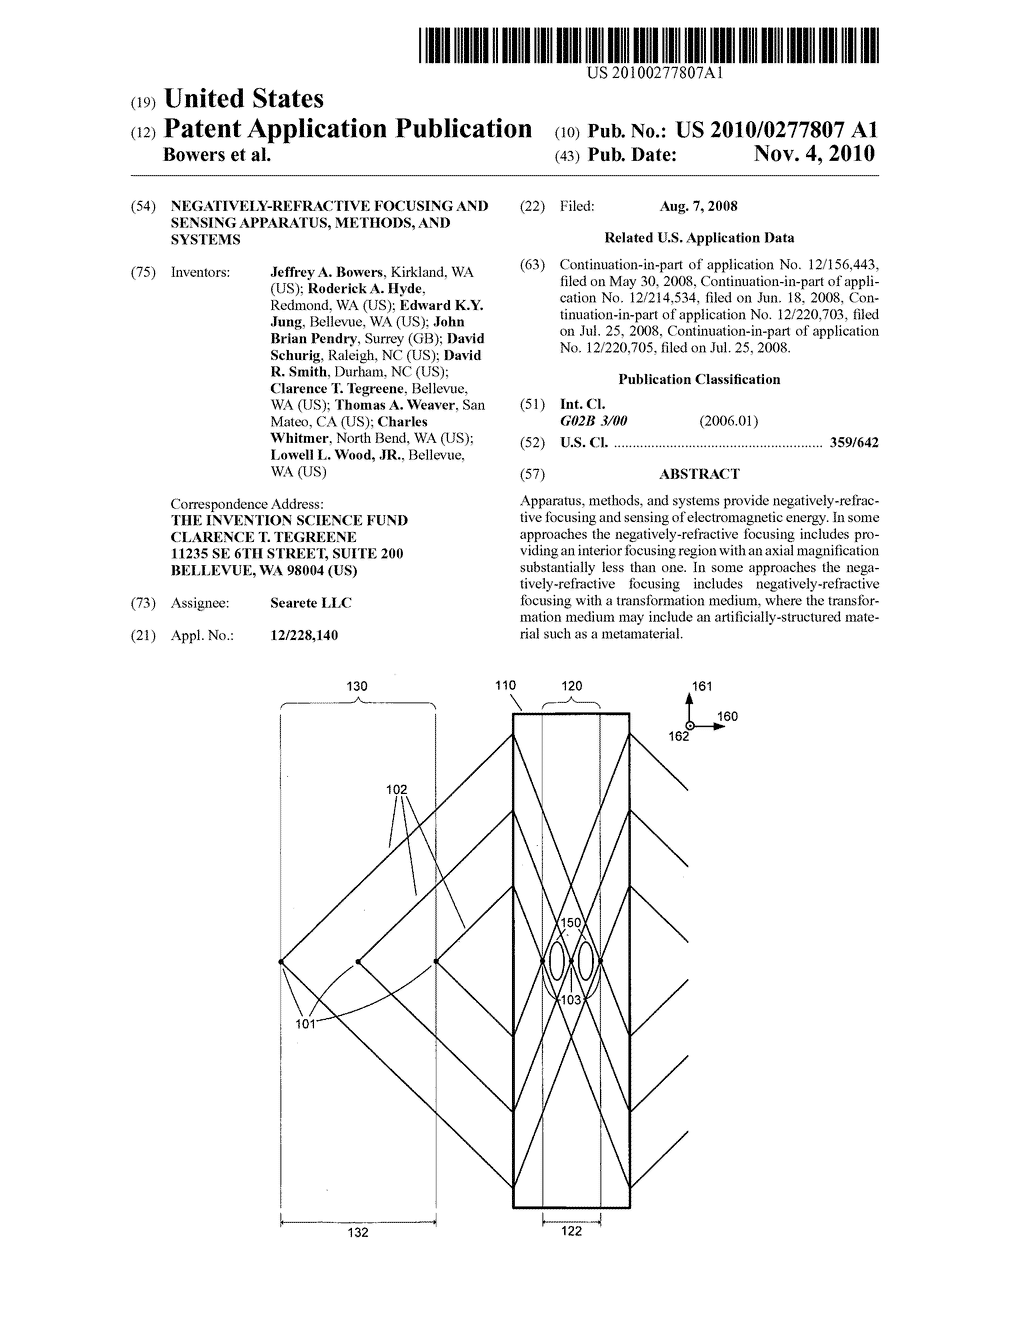 NEGATIVELY-REFRACTIVE FOCUSING AND SENSING APPARATUS, METHODS, AND SYSTEMS - diagram, schematic, and image 01